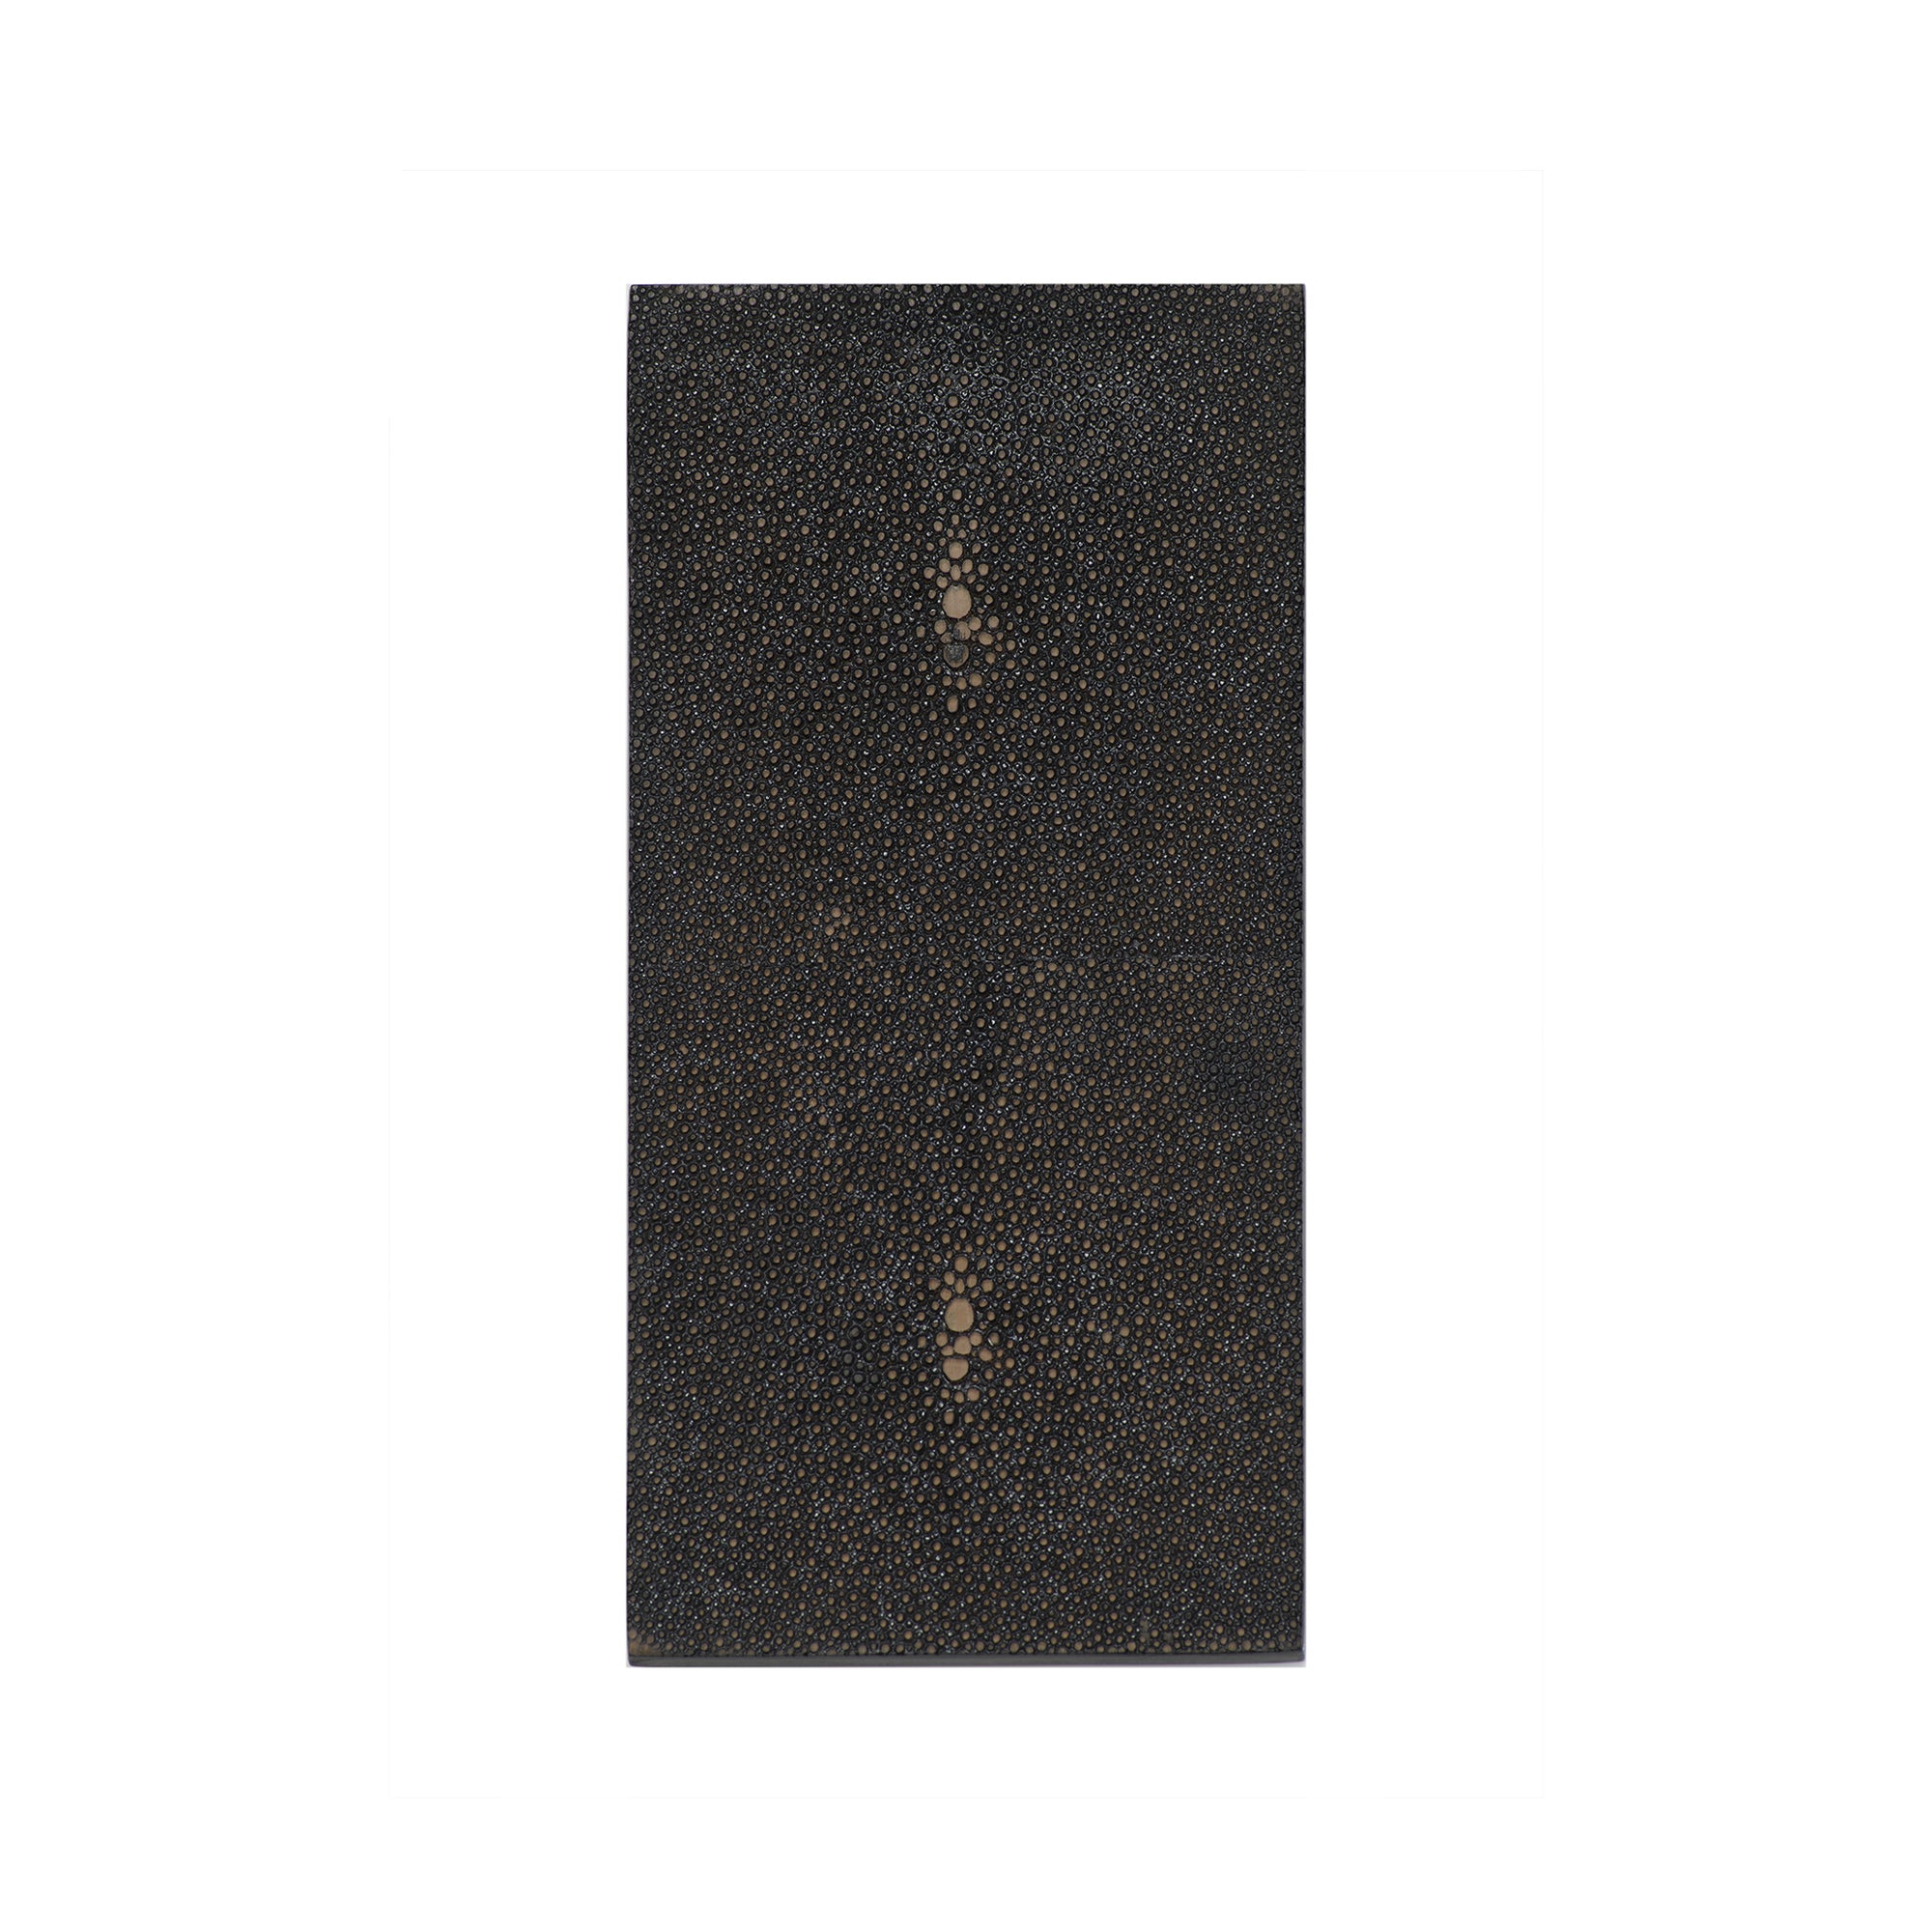 Posh Trading Company Double Coaster in Faux Shagreen Chocolate